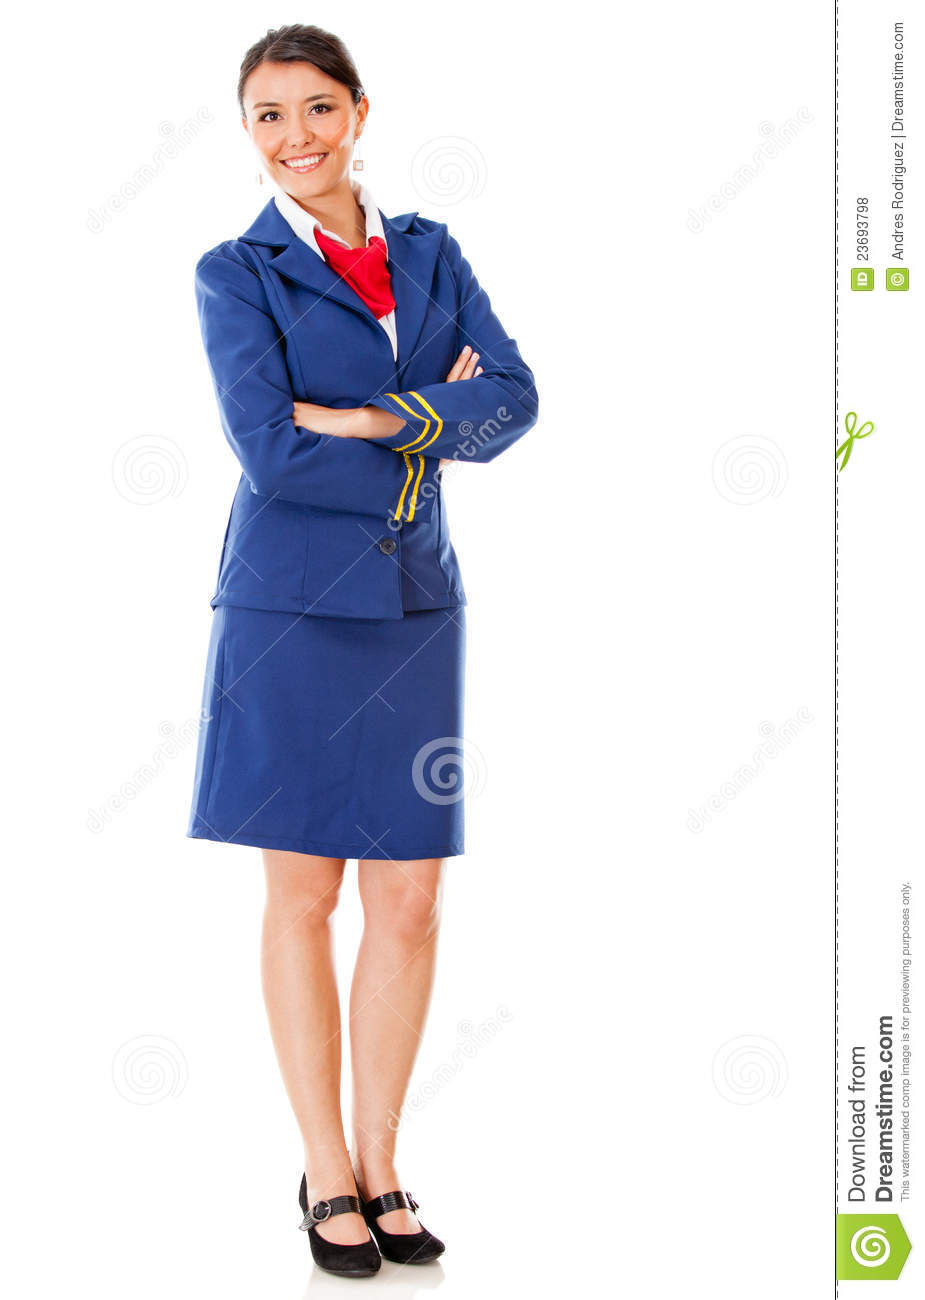 Fullbody Flight Attendant Stock Photo Image Of Outfit